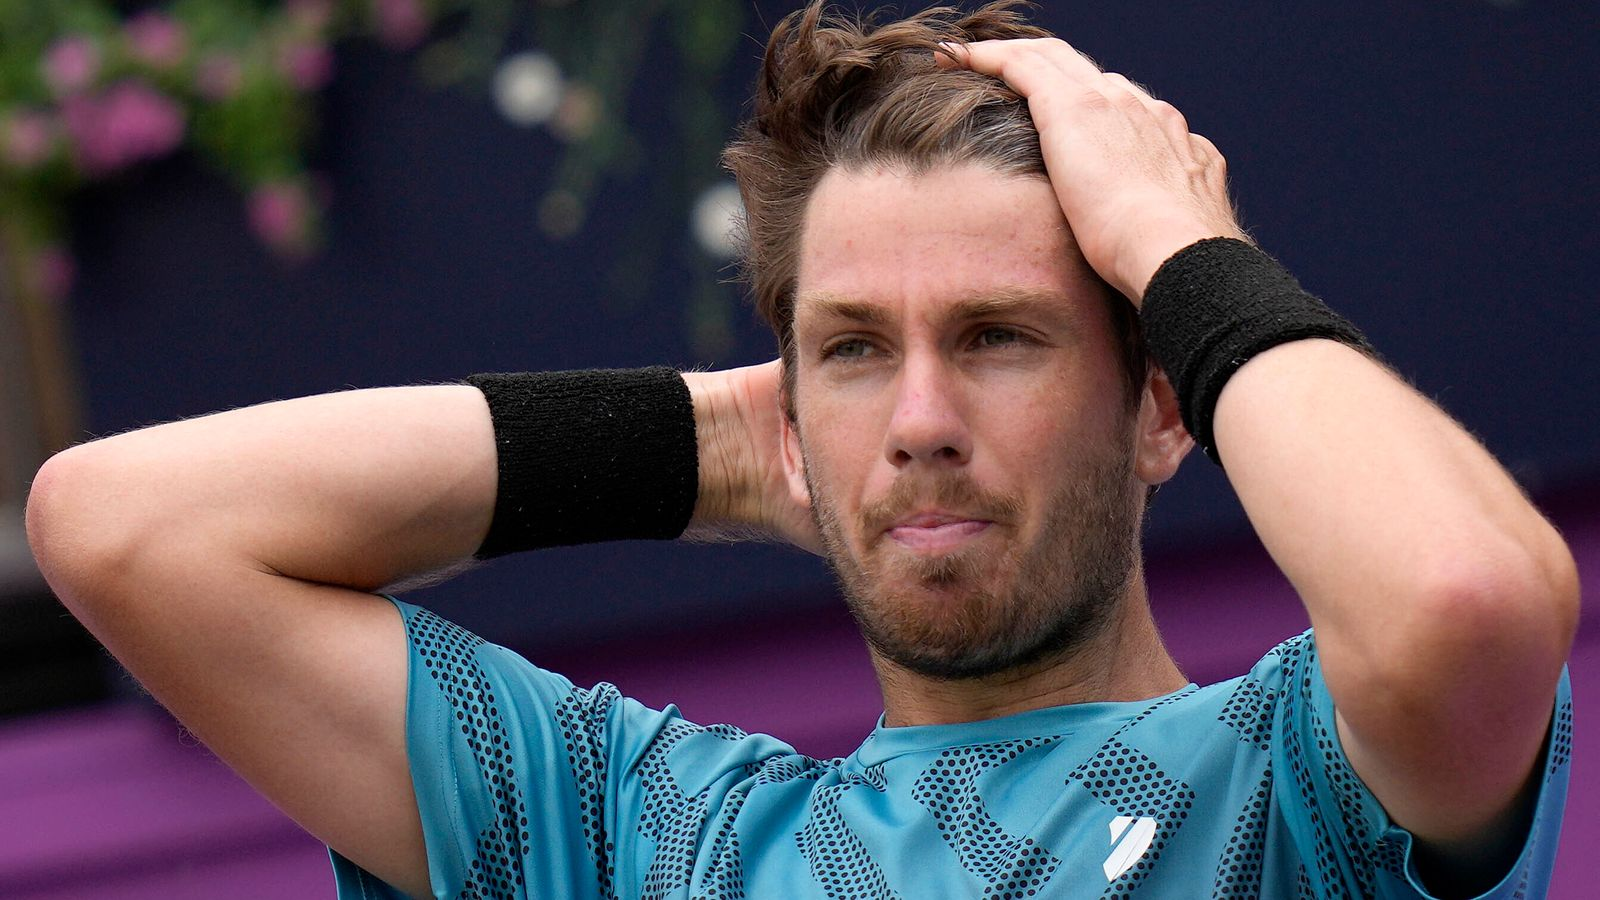 2021 Championship: Cameron Norie loses Queen's Club title after losing to Matteo Berrettini in final    Tennis news